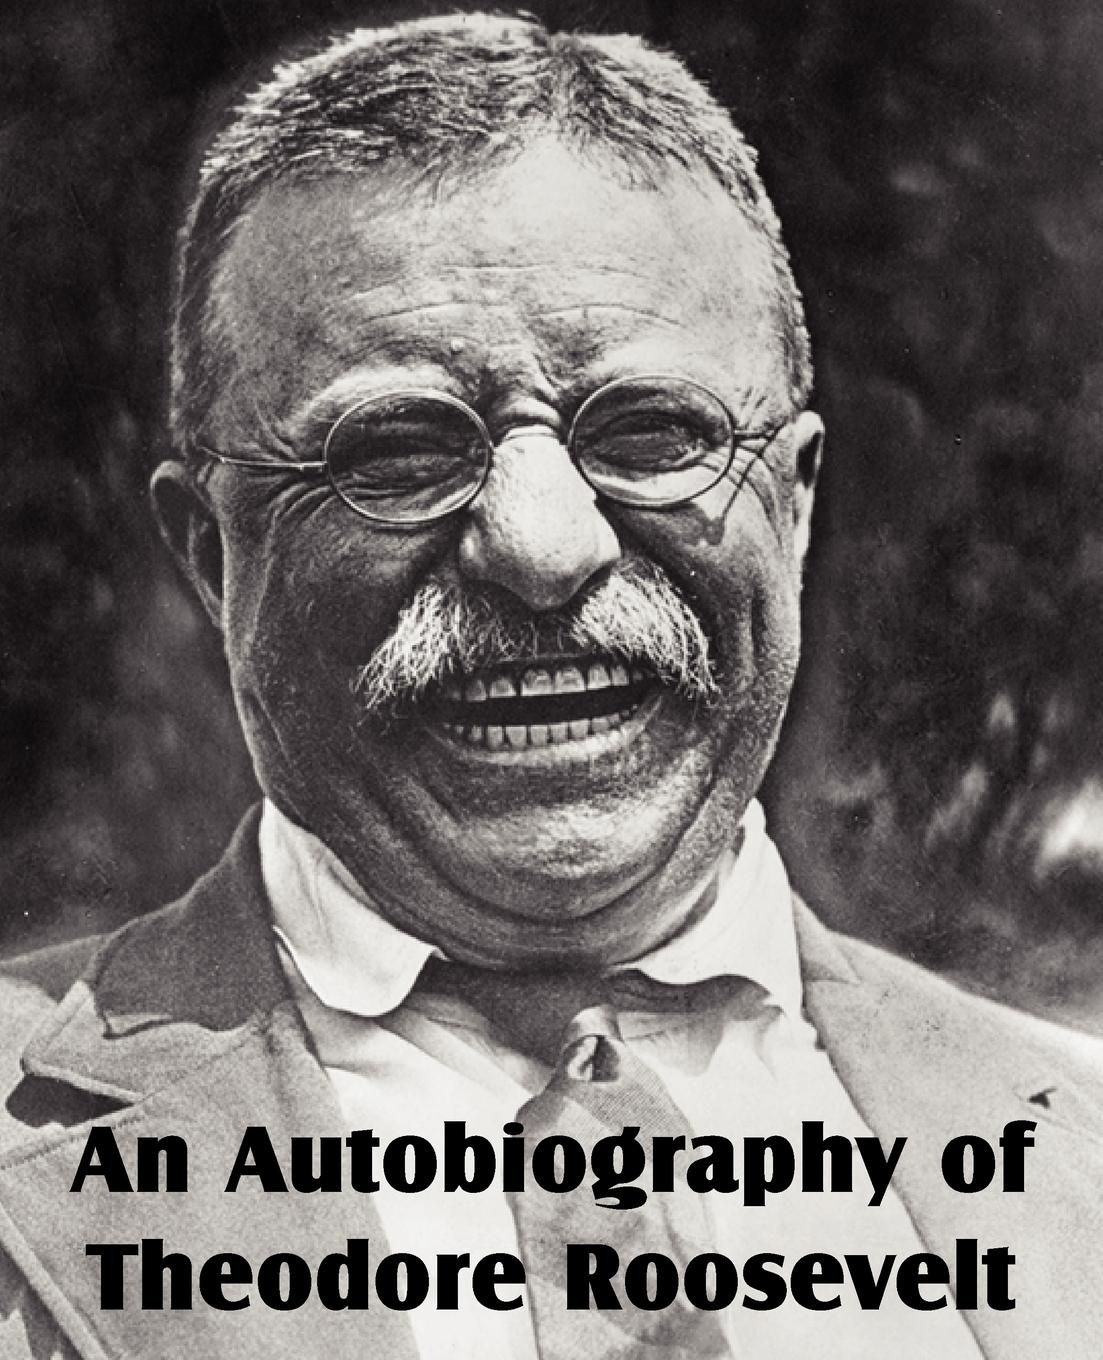 Theodore Roosevelt An Autobiography of Theodore Roosevelt the president is missing